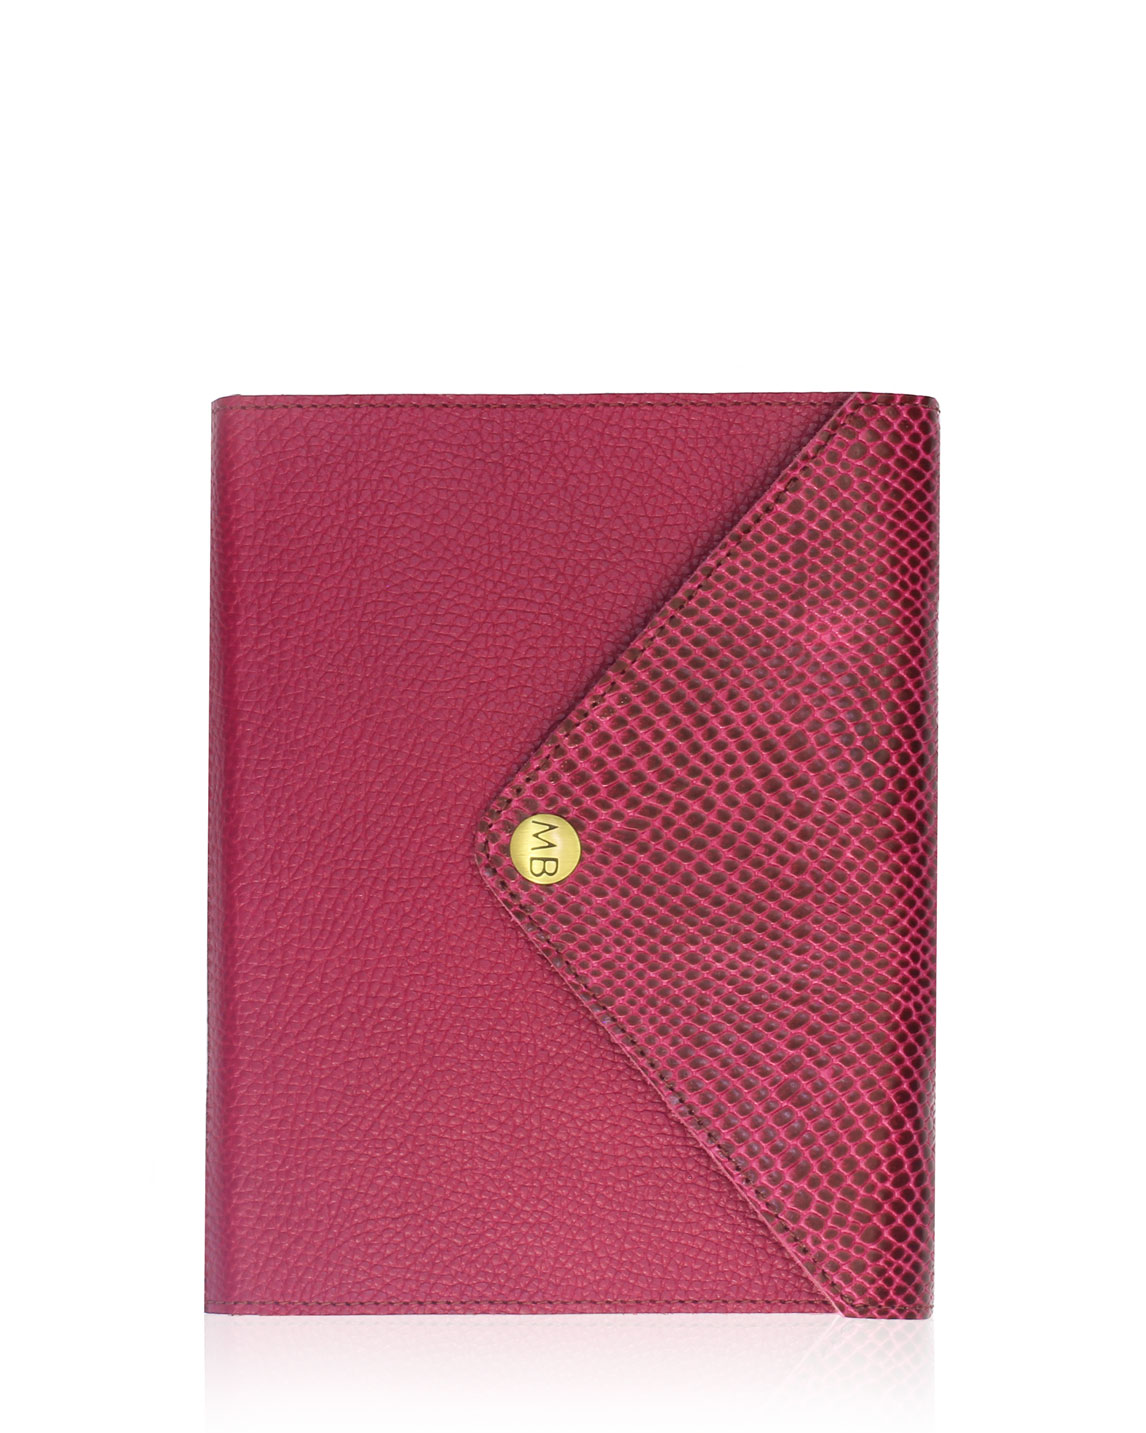 Agenda AG-101 Color Fucsia